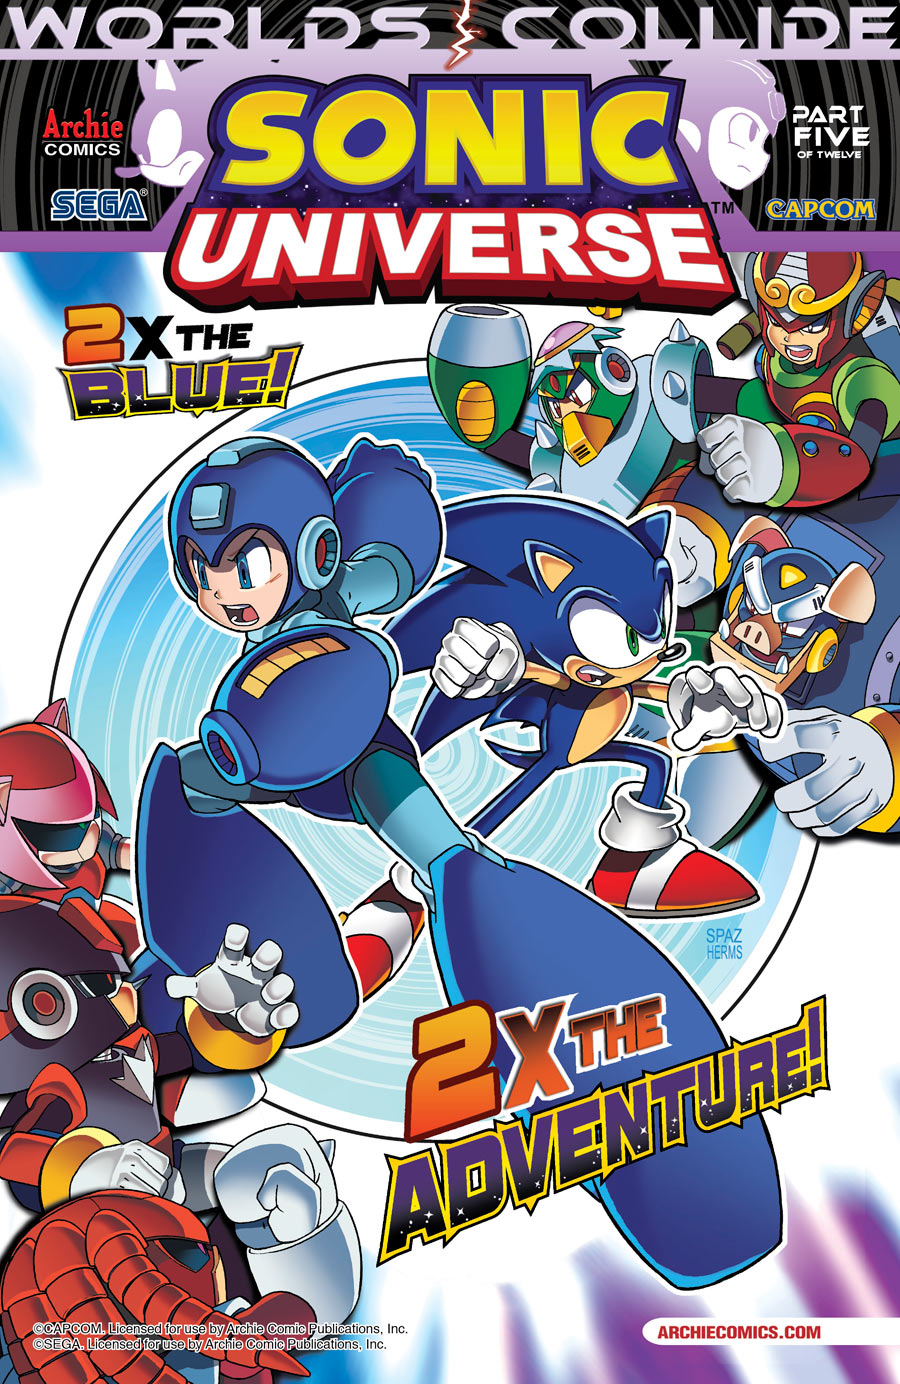 Archie Sonic Universe Issue 52 Mobius Encyclopaedia